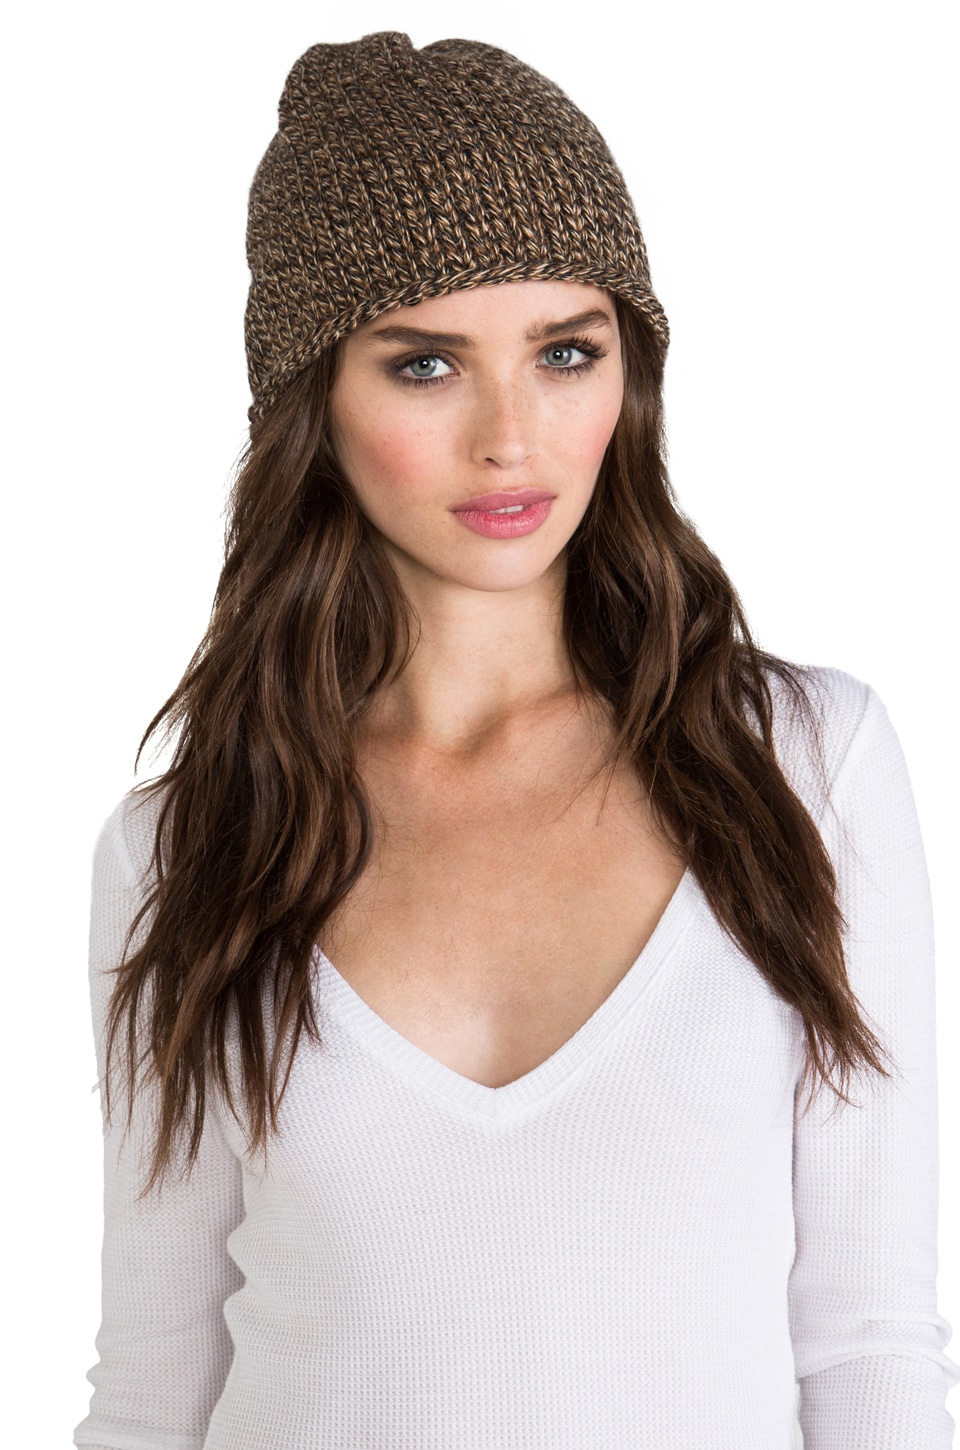 DE NADA Beanie Knit in Brown Mix